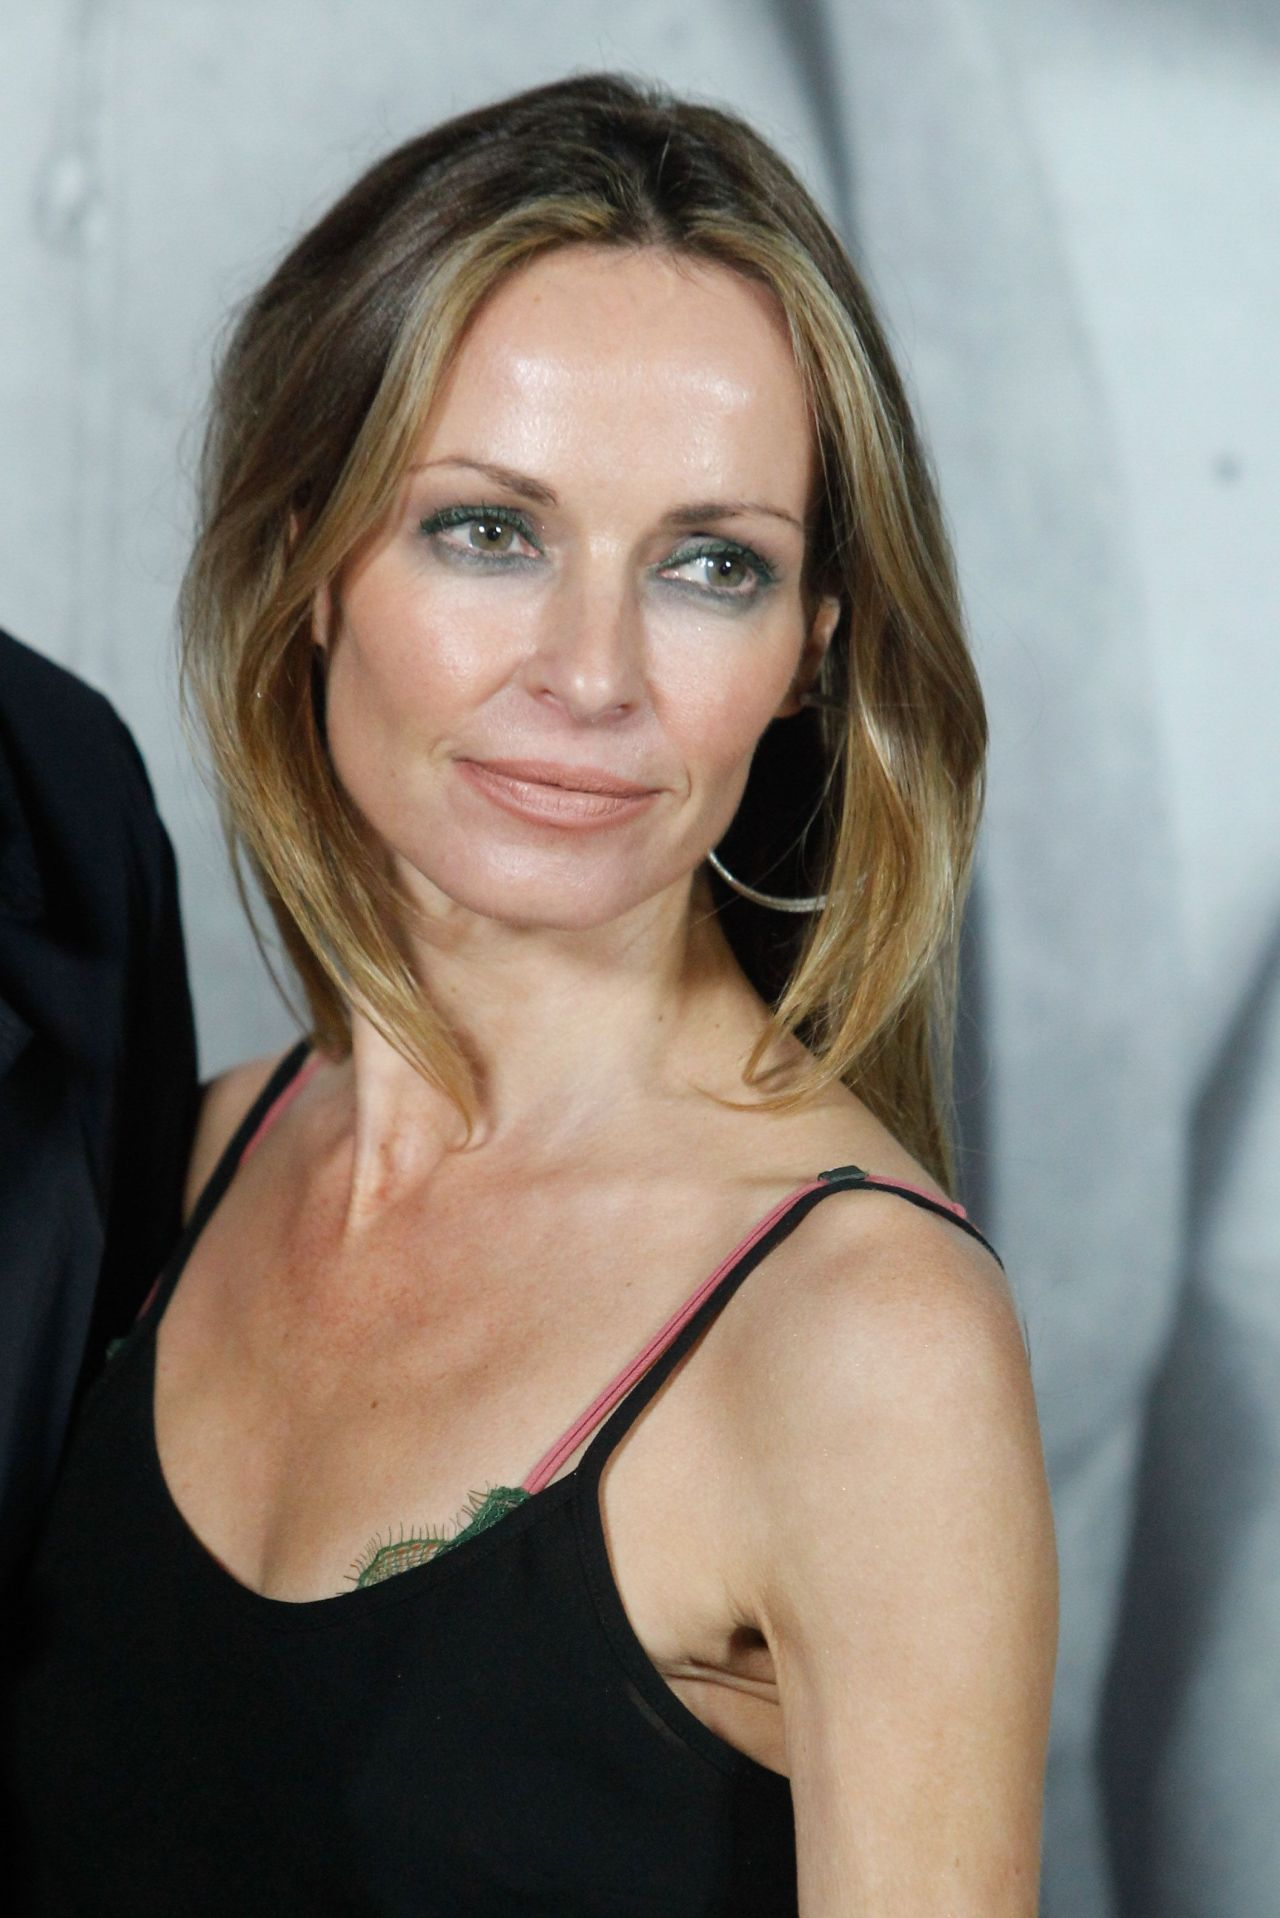 Sharon Corr Latest Photos Celebmafia